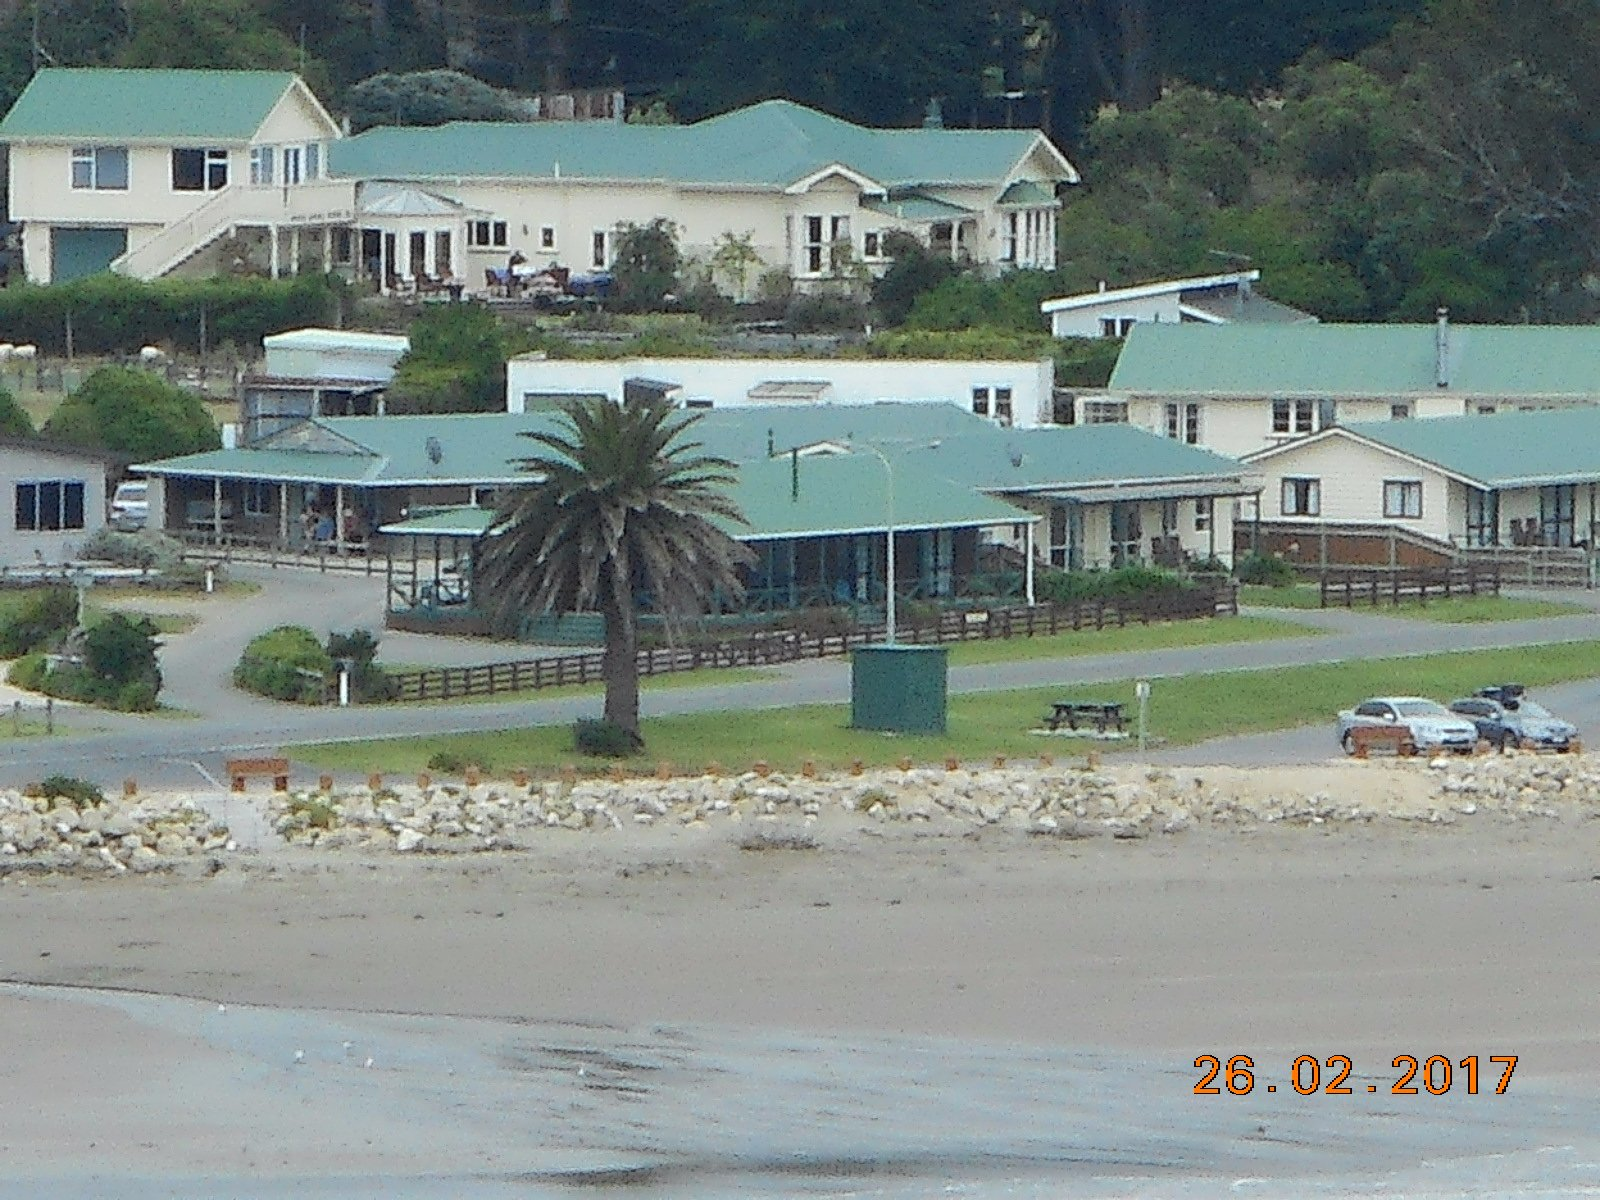 Castlepoint Holiday Park and Motels